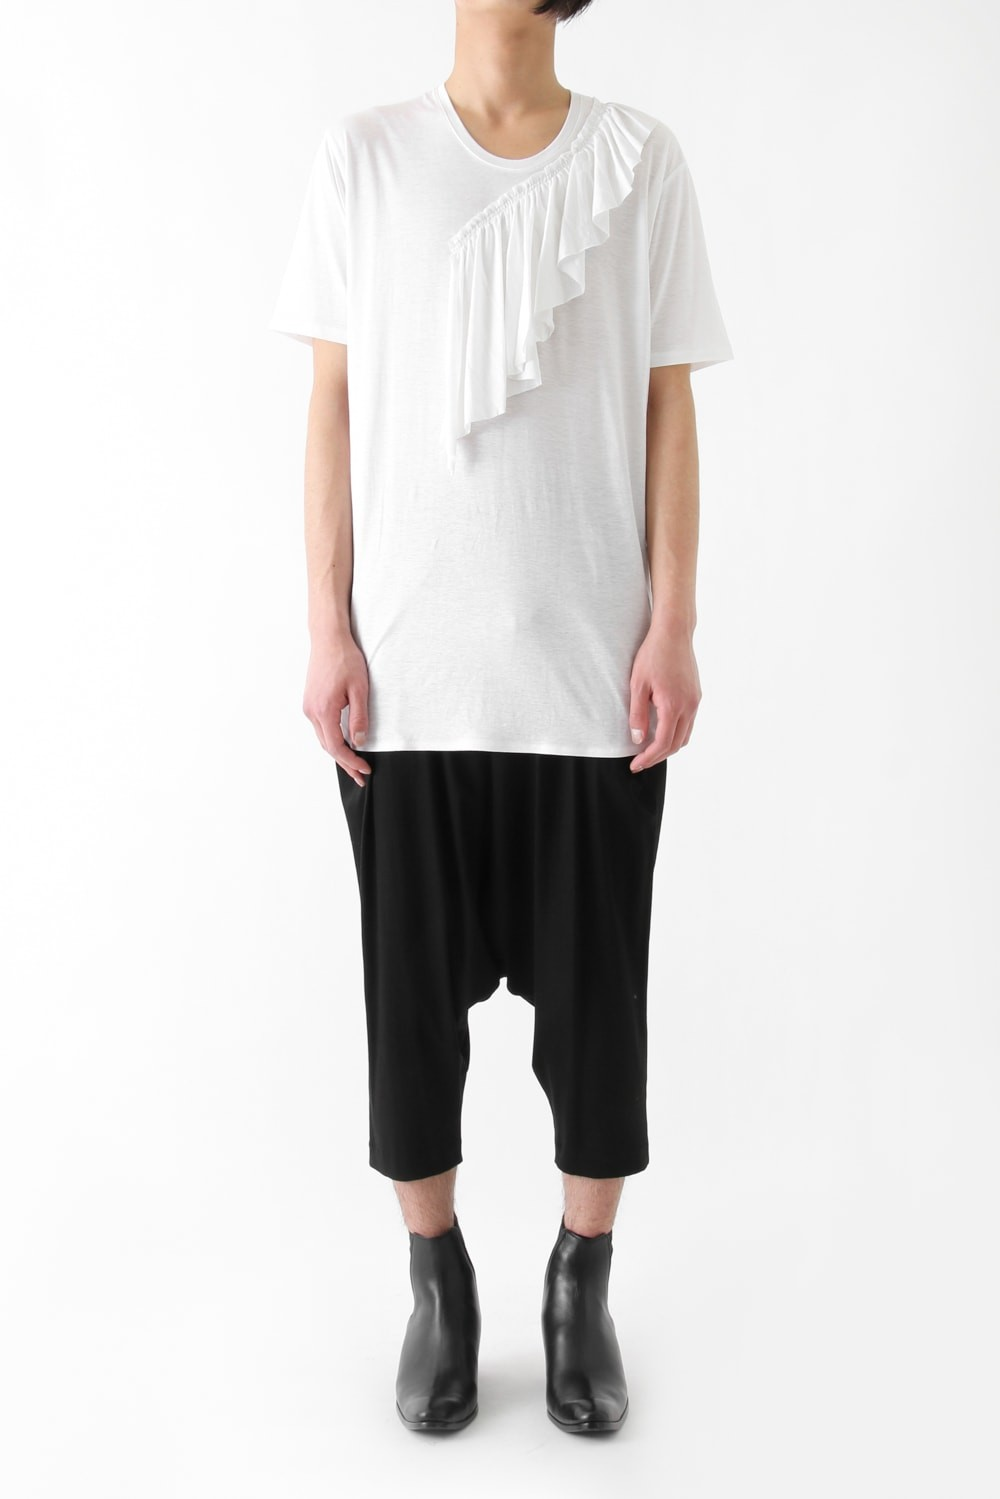 17S Micro Lyocell Linen Plain Stitch OFF WHITE